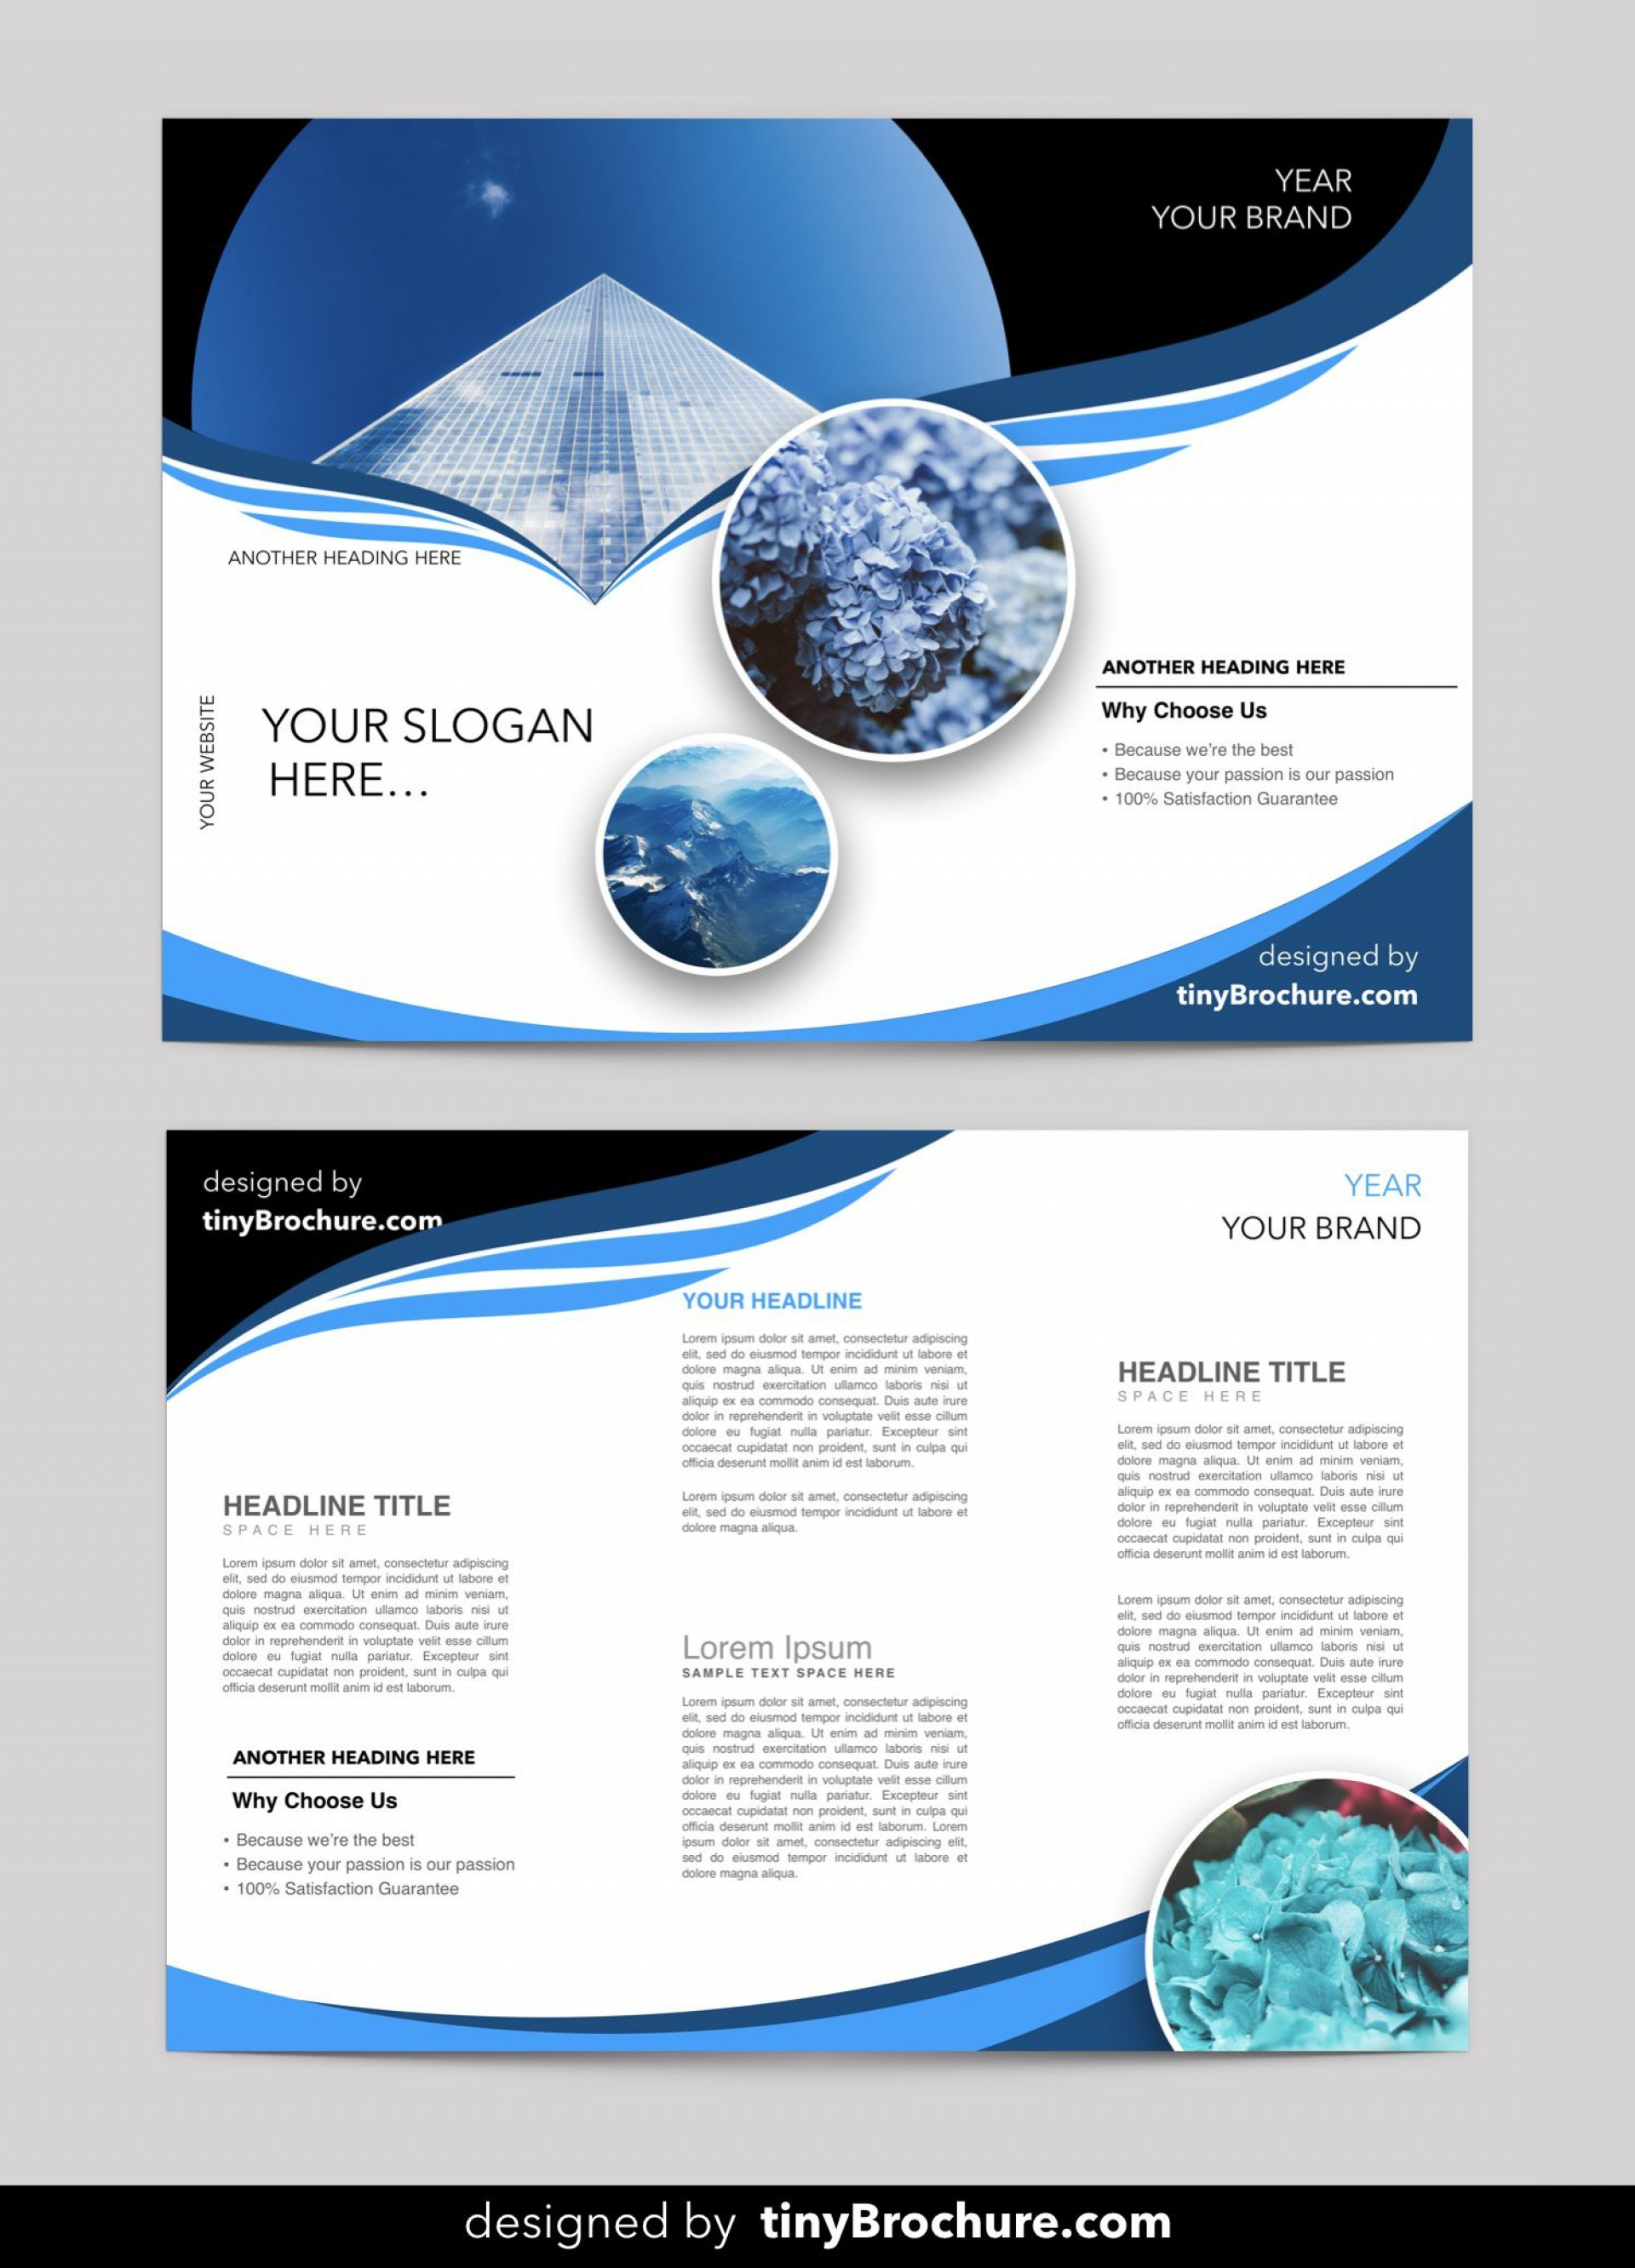 004 Rare Free Download Flyer Template High Definition  Photoshop For Microsoft Word Downloadable Publisher1920